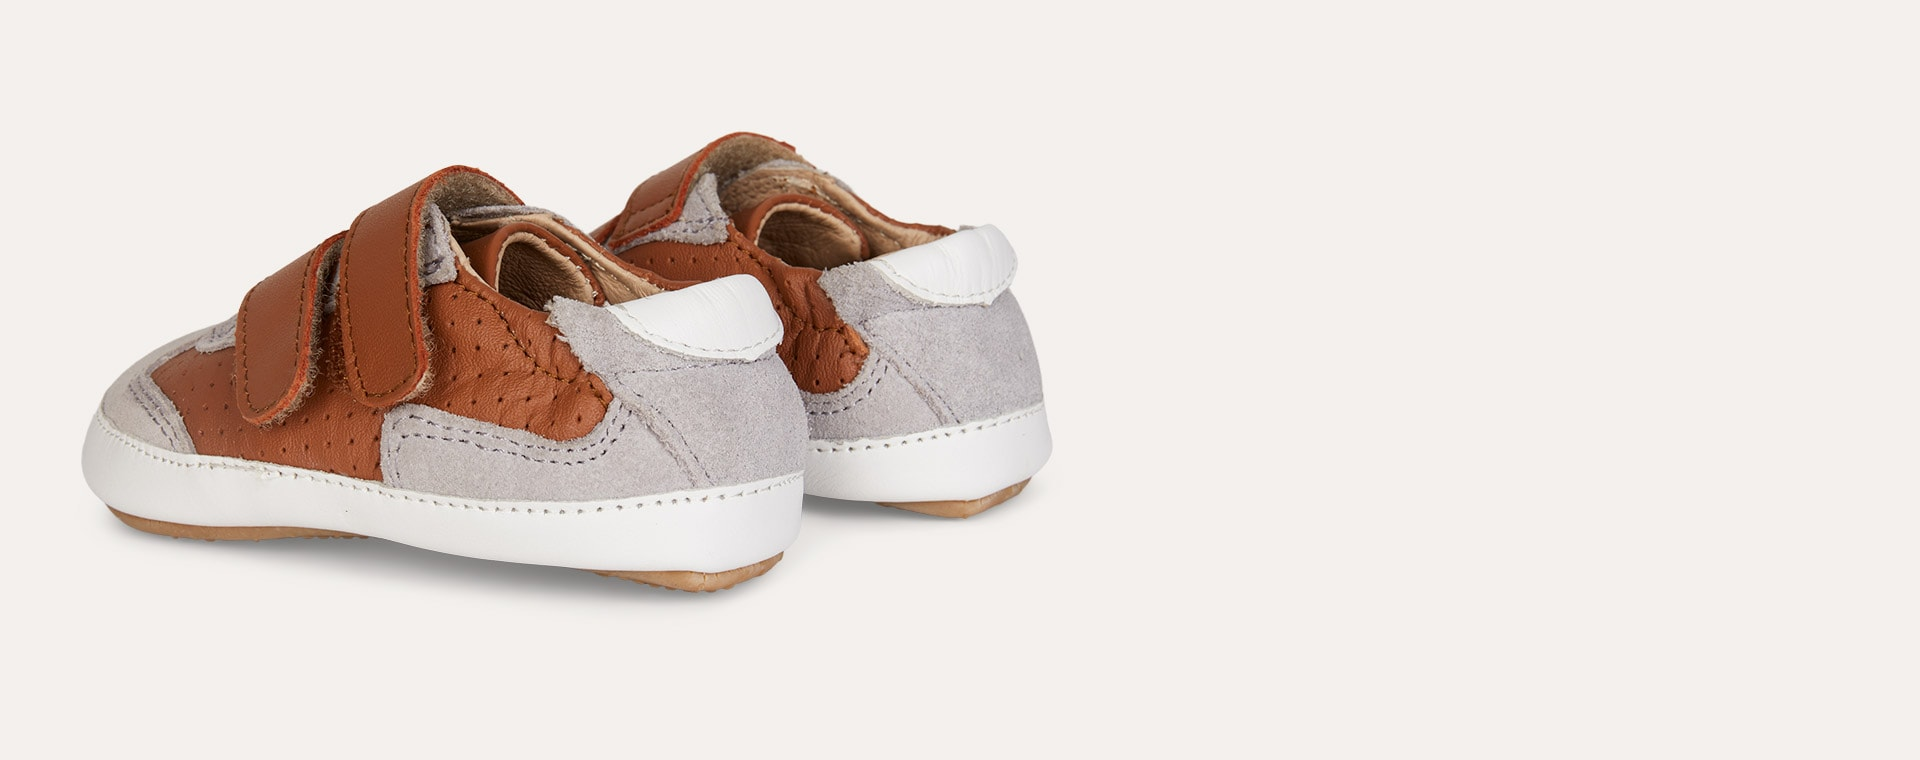 Tan old soles AW'19 Revival Baby Soft sole shoe